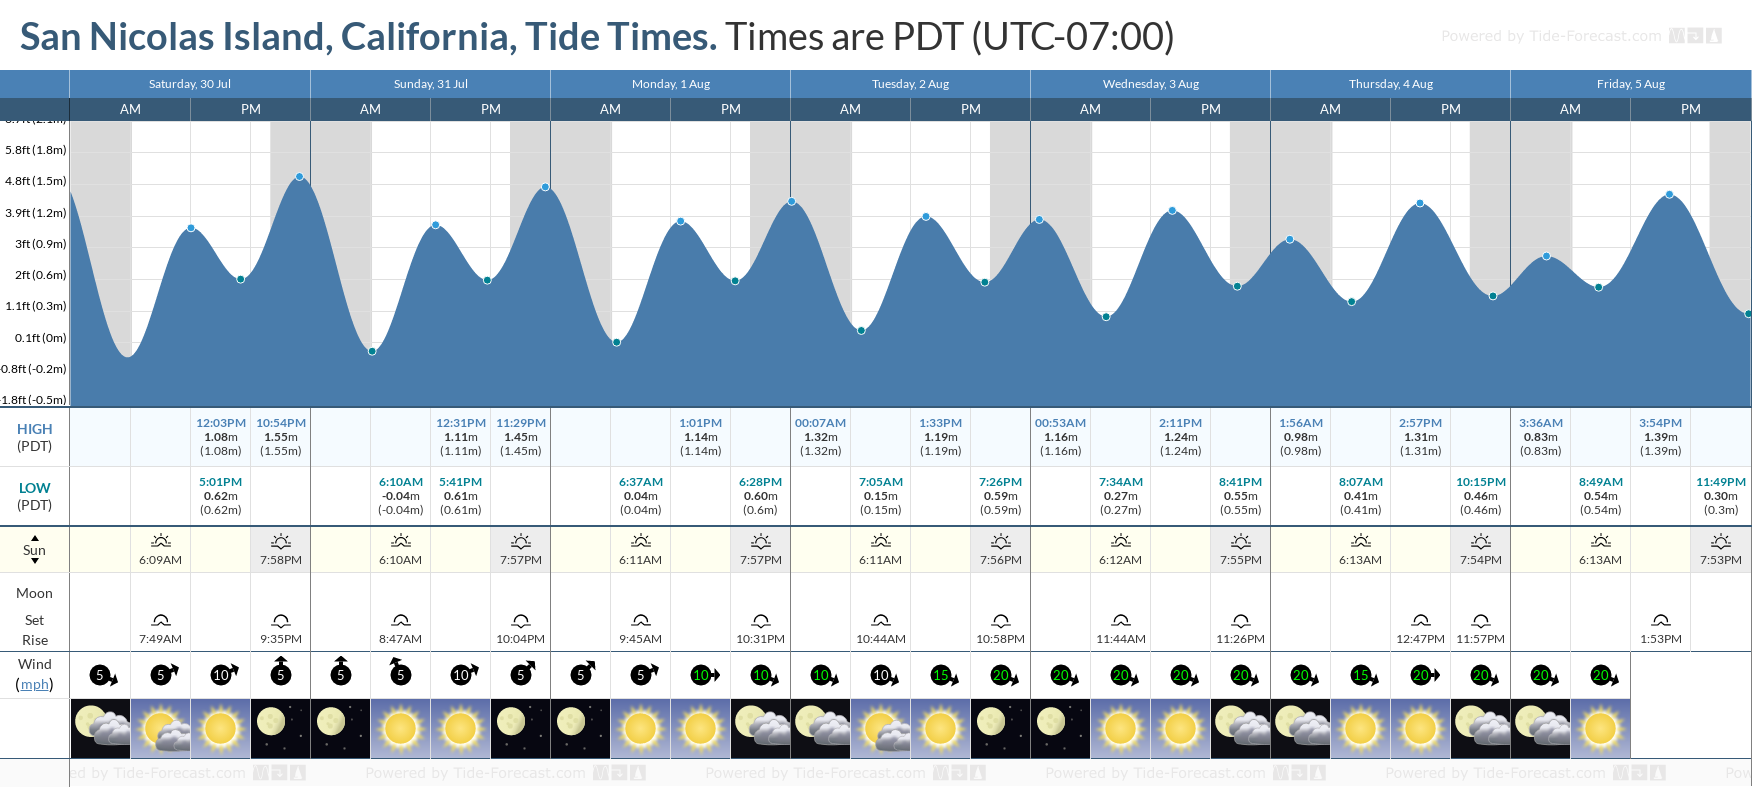 San Nicolas Island, California Tide Chart including high and low tide tide times for the next 7 days